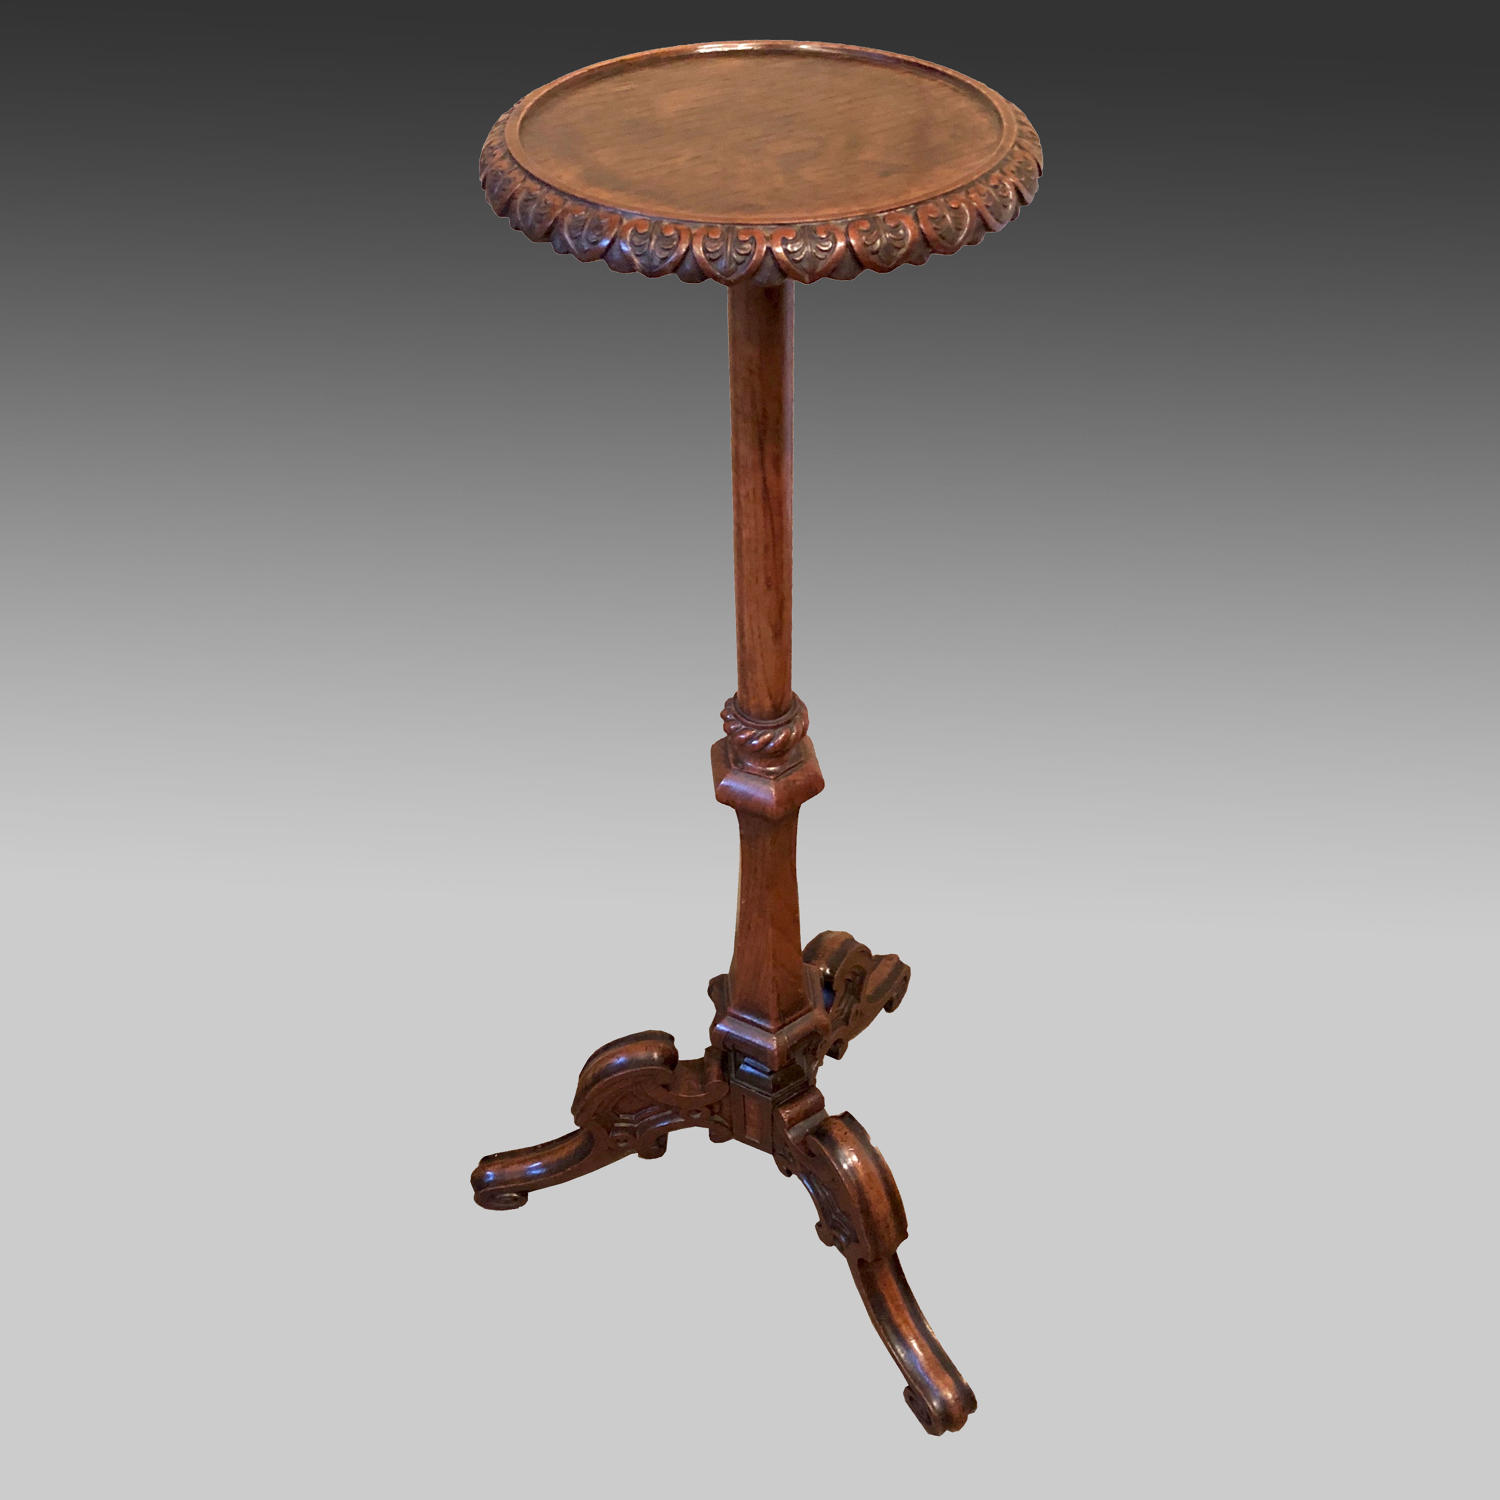 19th century oak torchere or candlestand